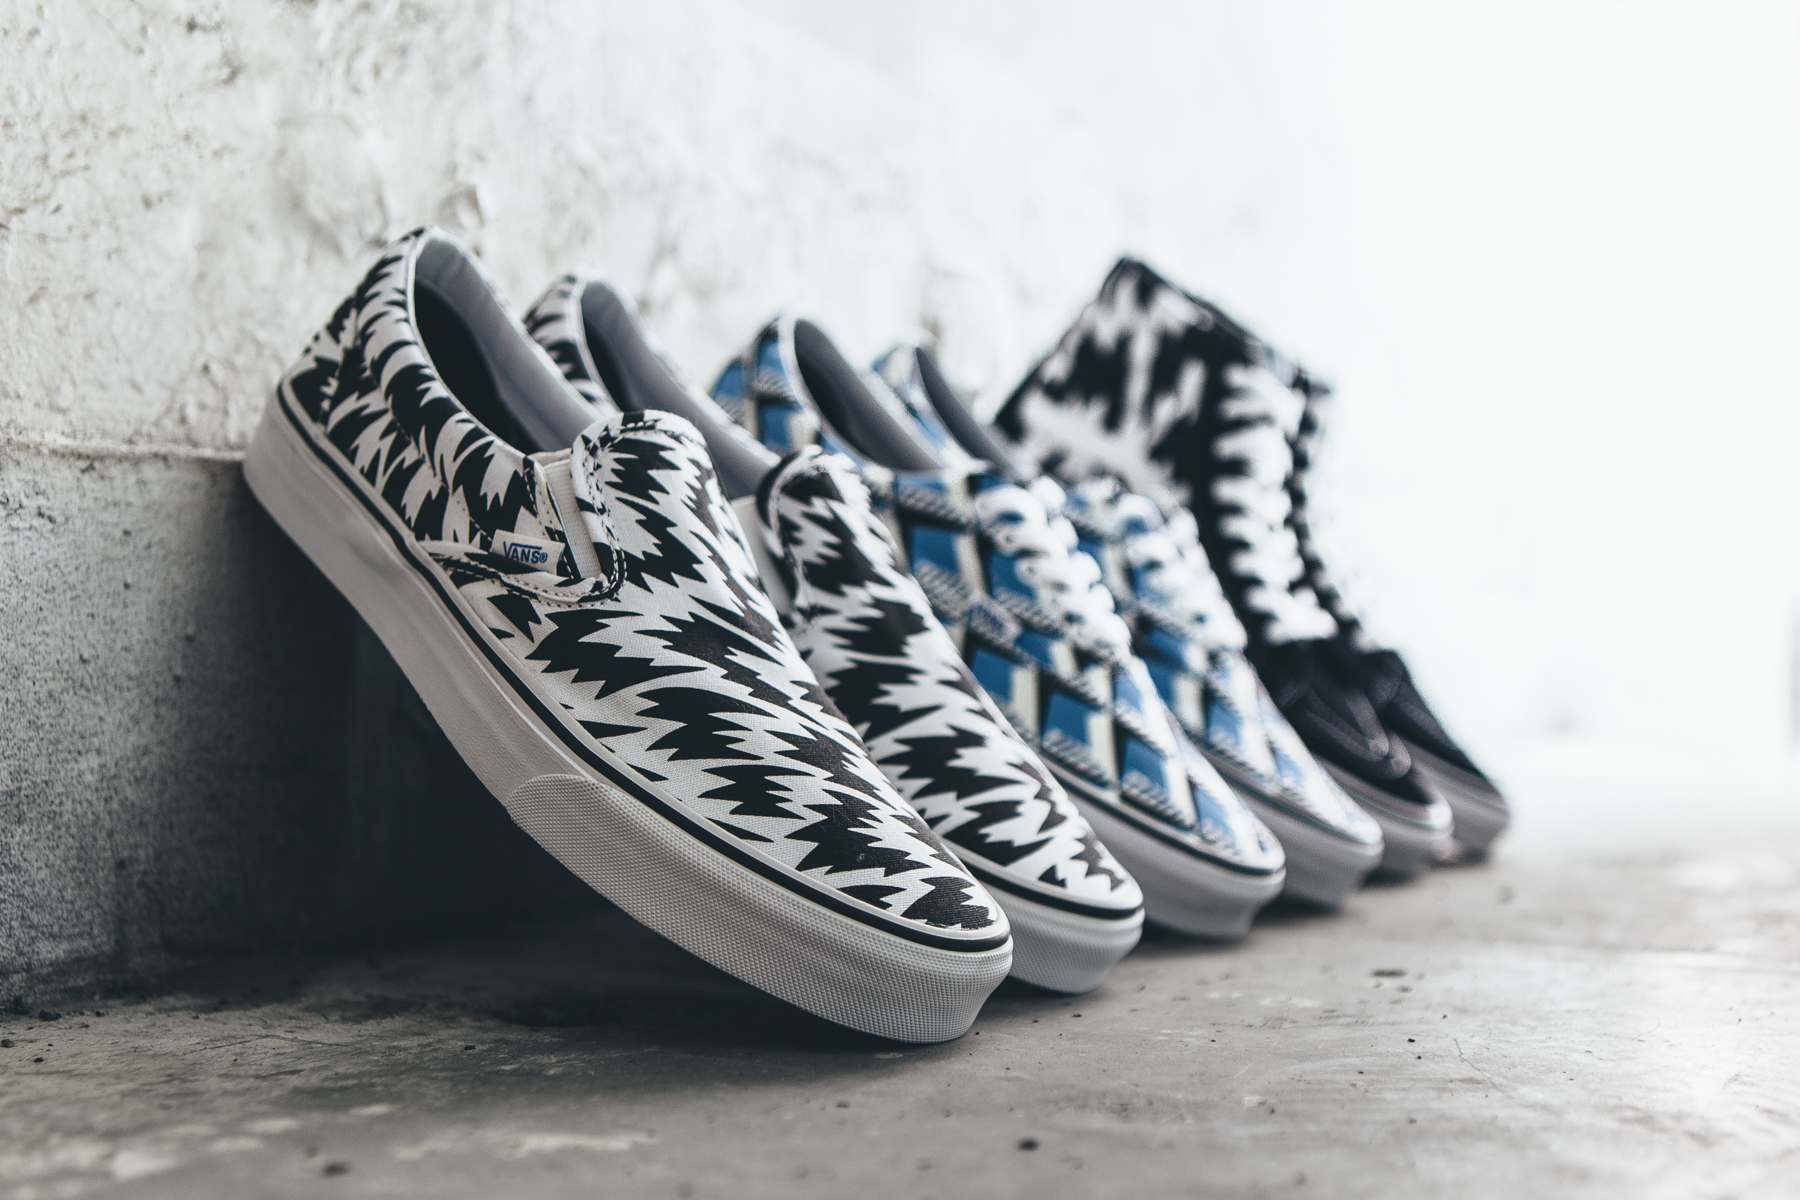 eley-kishimoto-x-vans-2015-summer-living-art-sneaker-collection-0